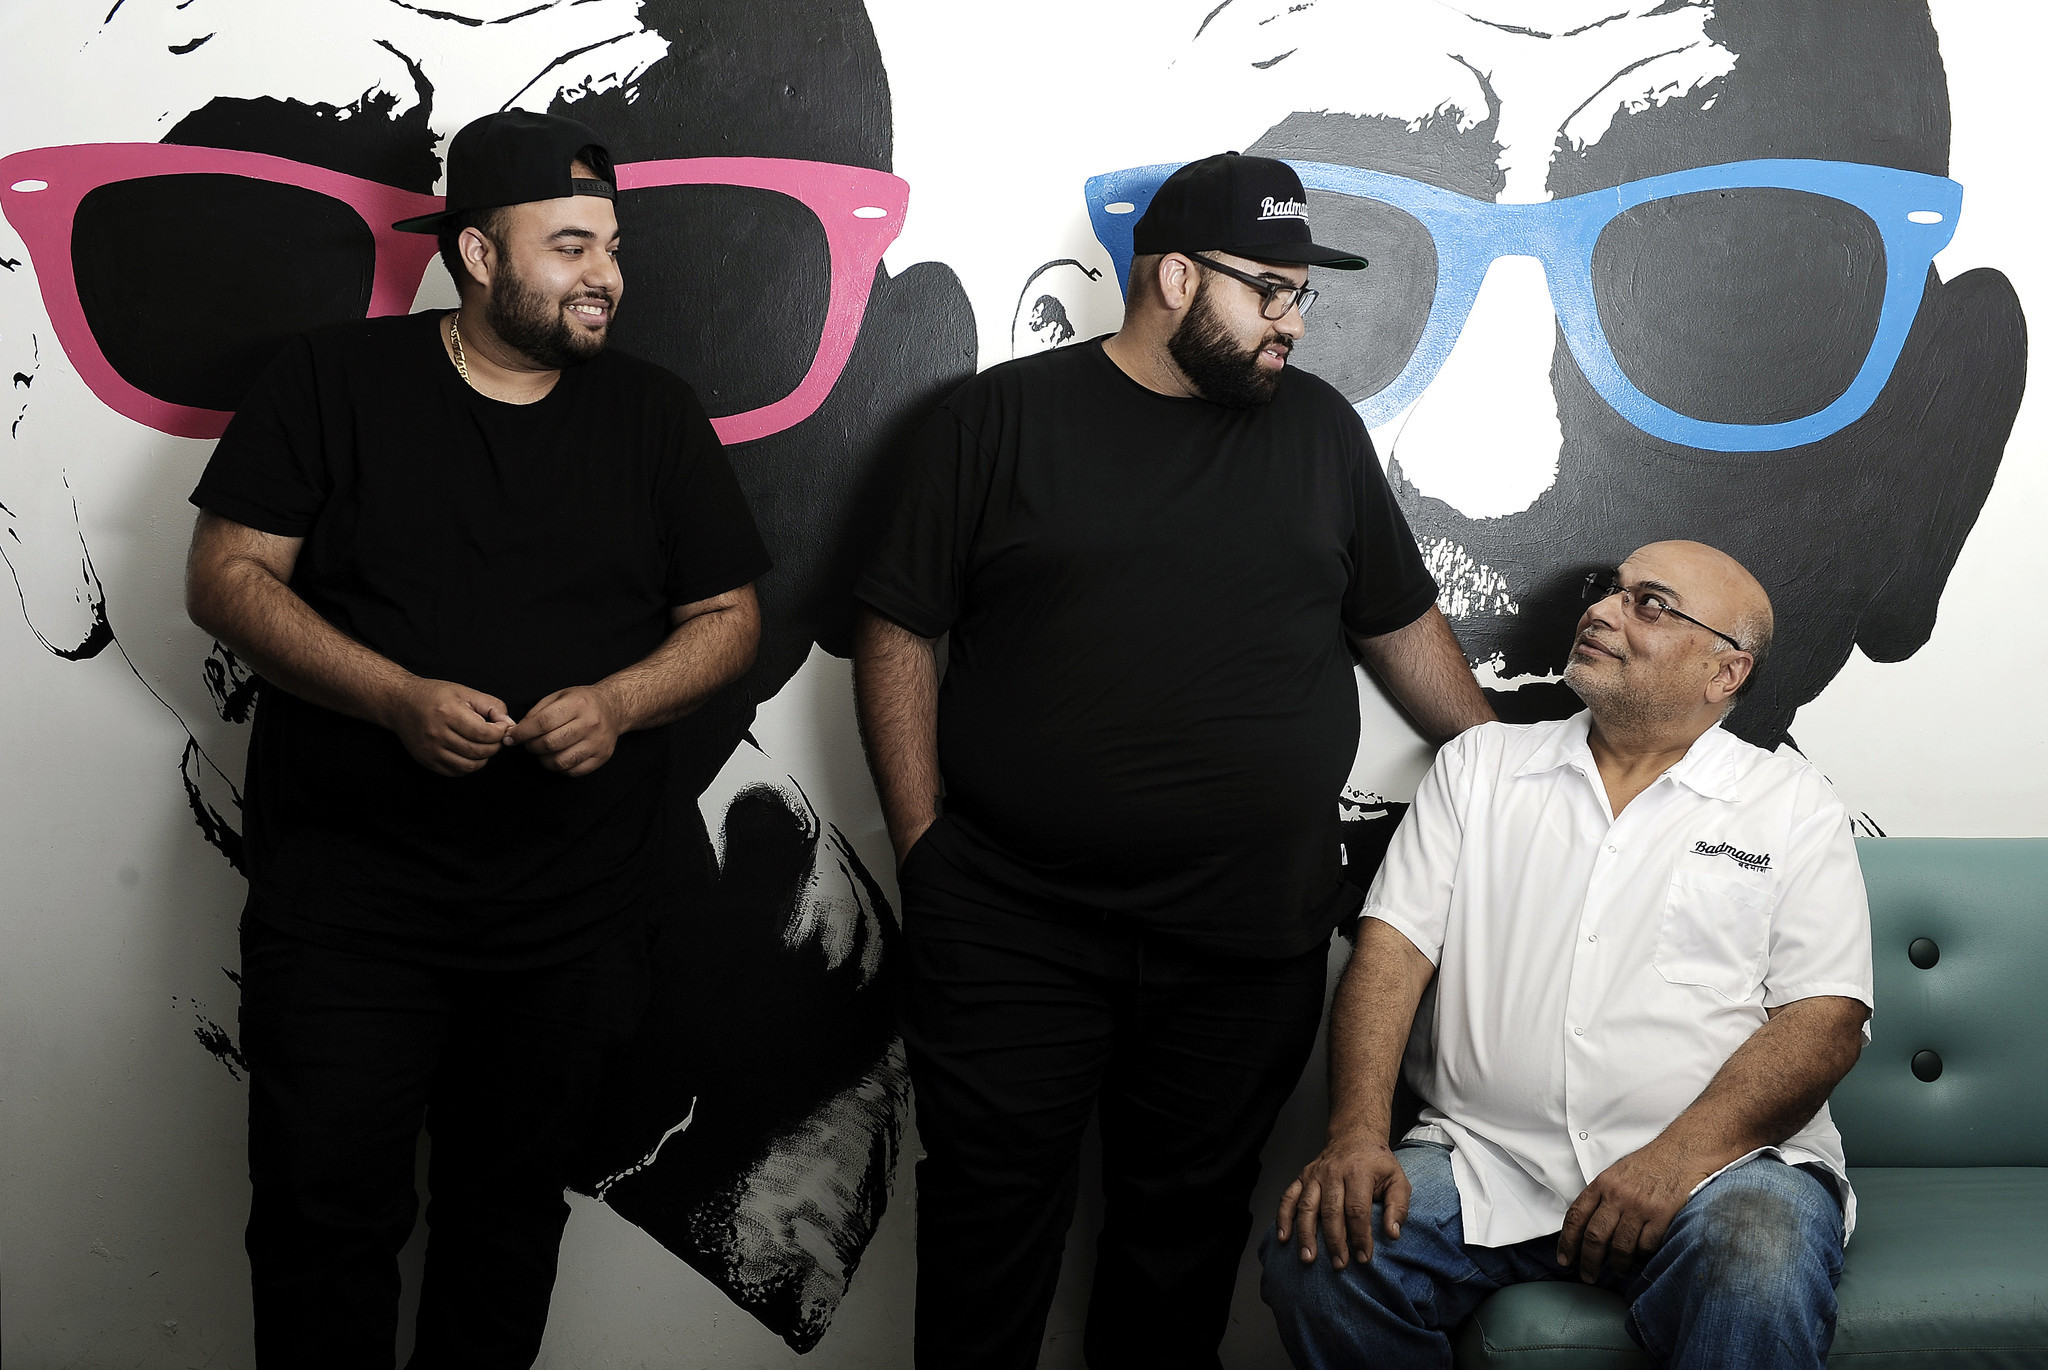 Pawan Mahendro, right, and sons Nakul and Arjun are chefs and owners of Badmaash.